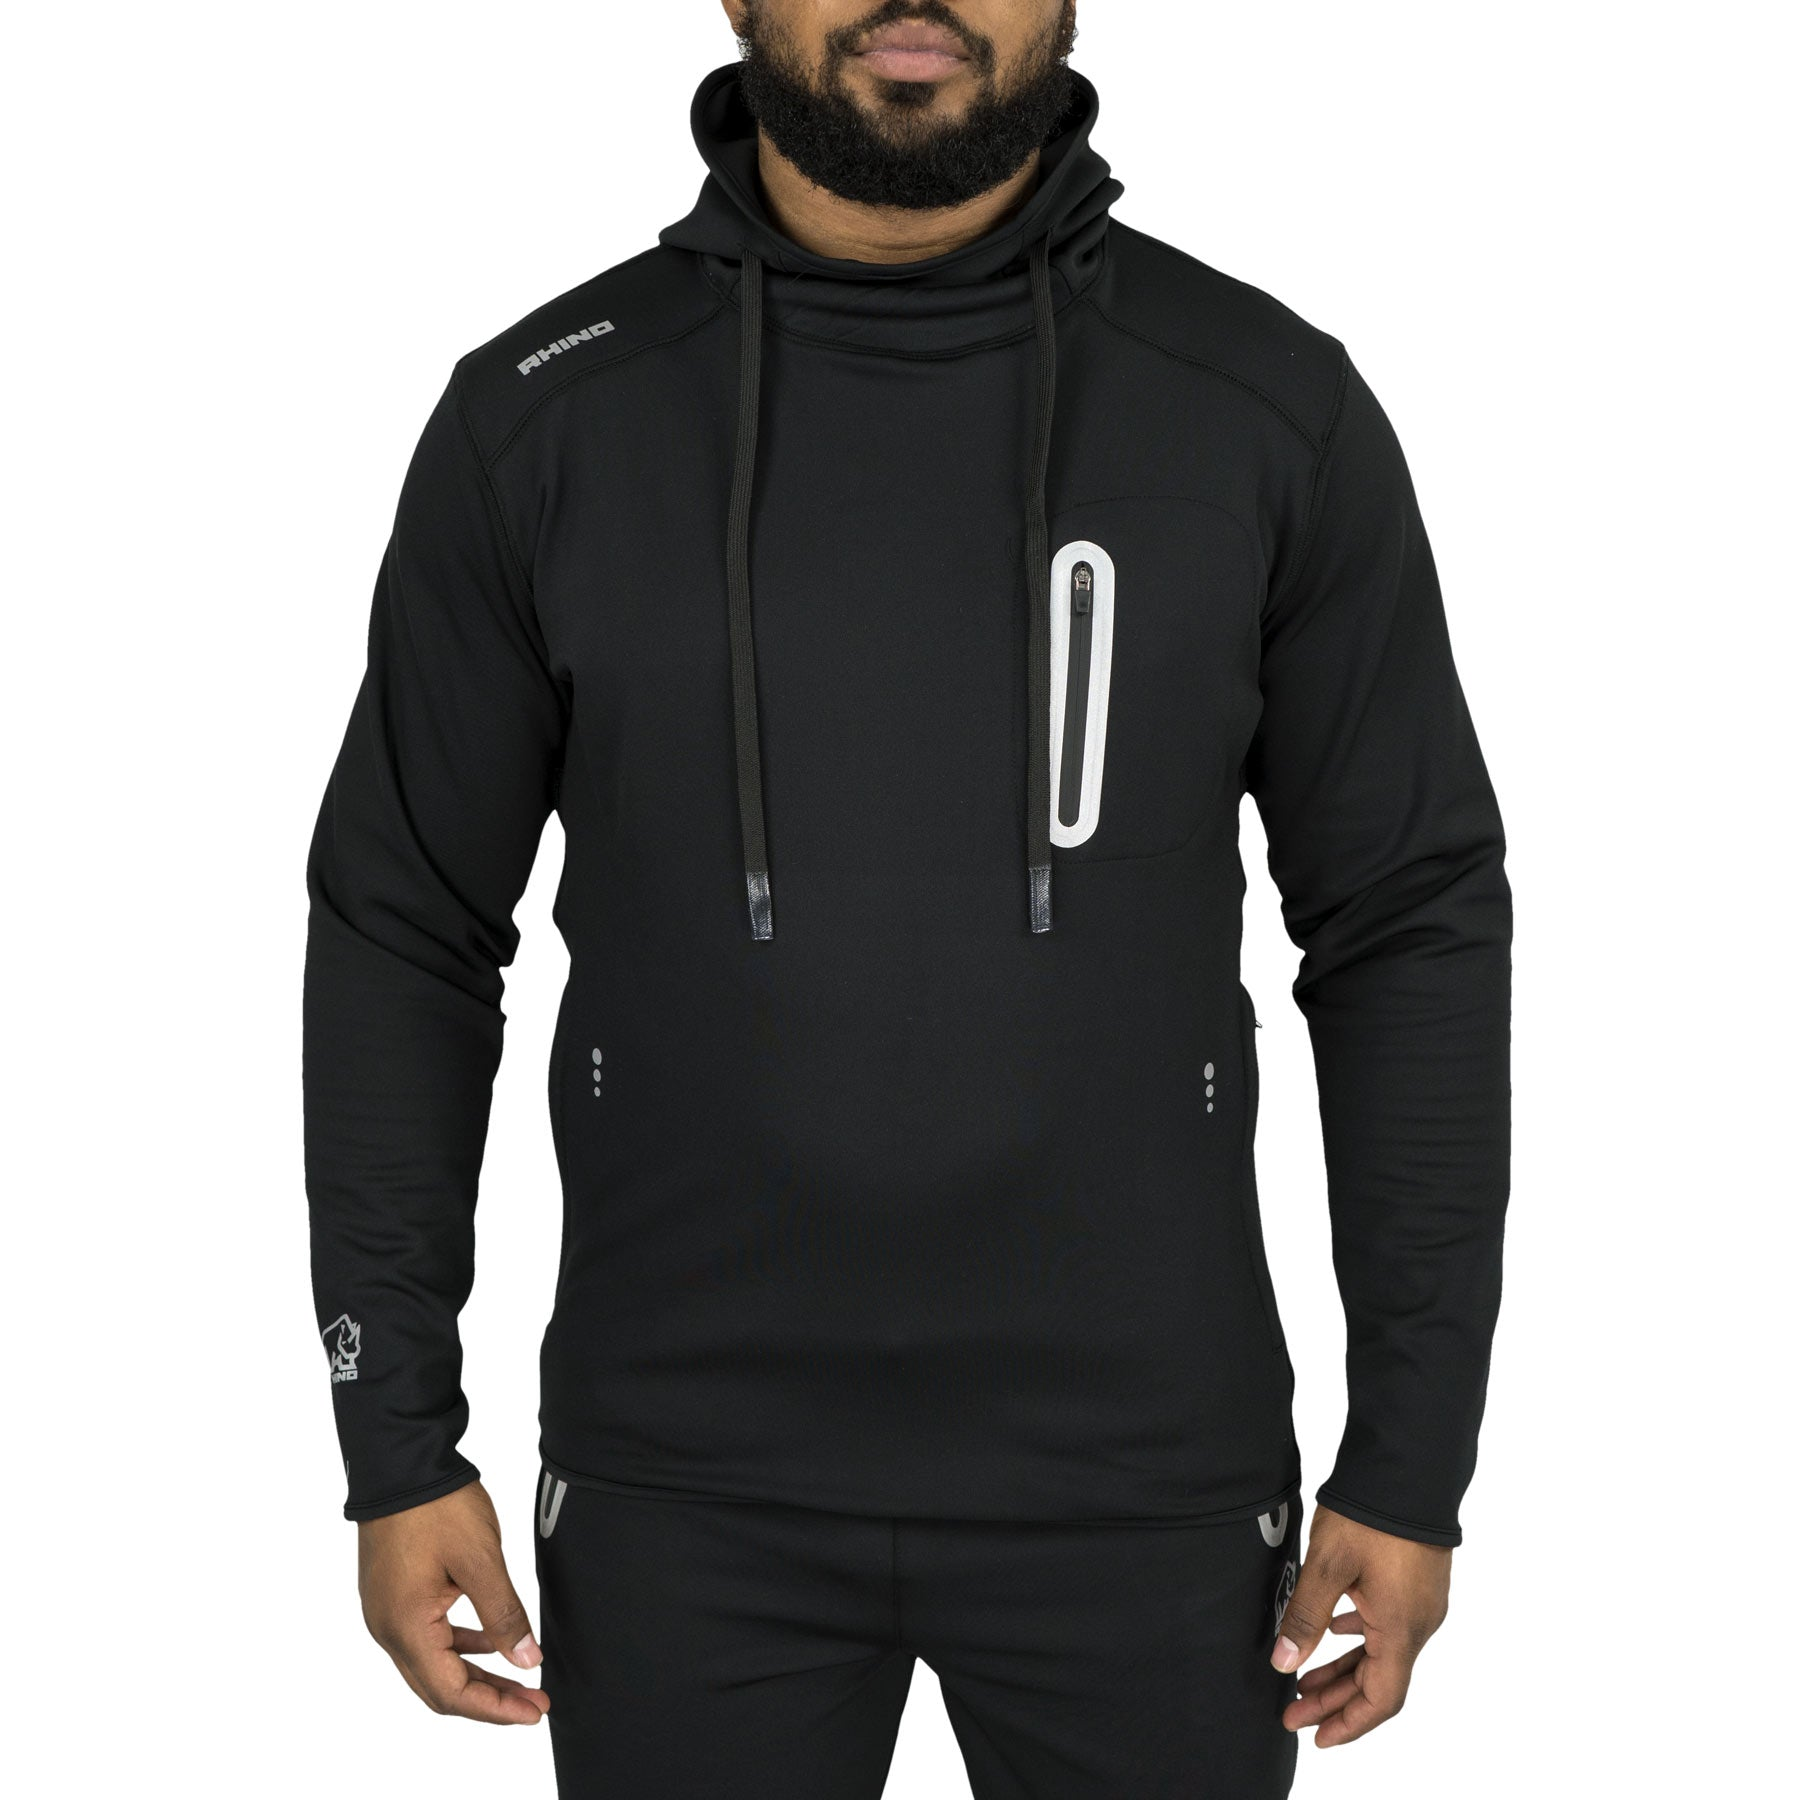 Alpha Rhino Poly Fleece Hoodie - www.therugbyshop.com